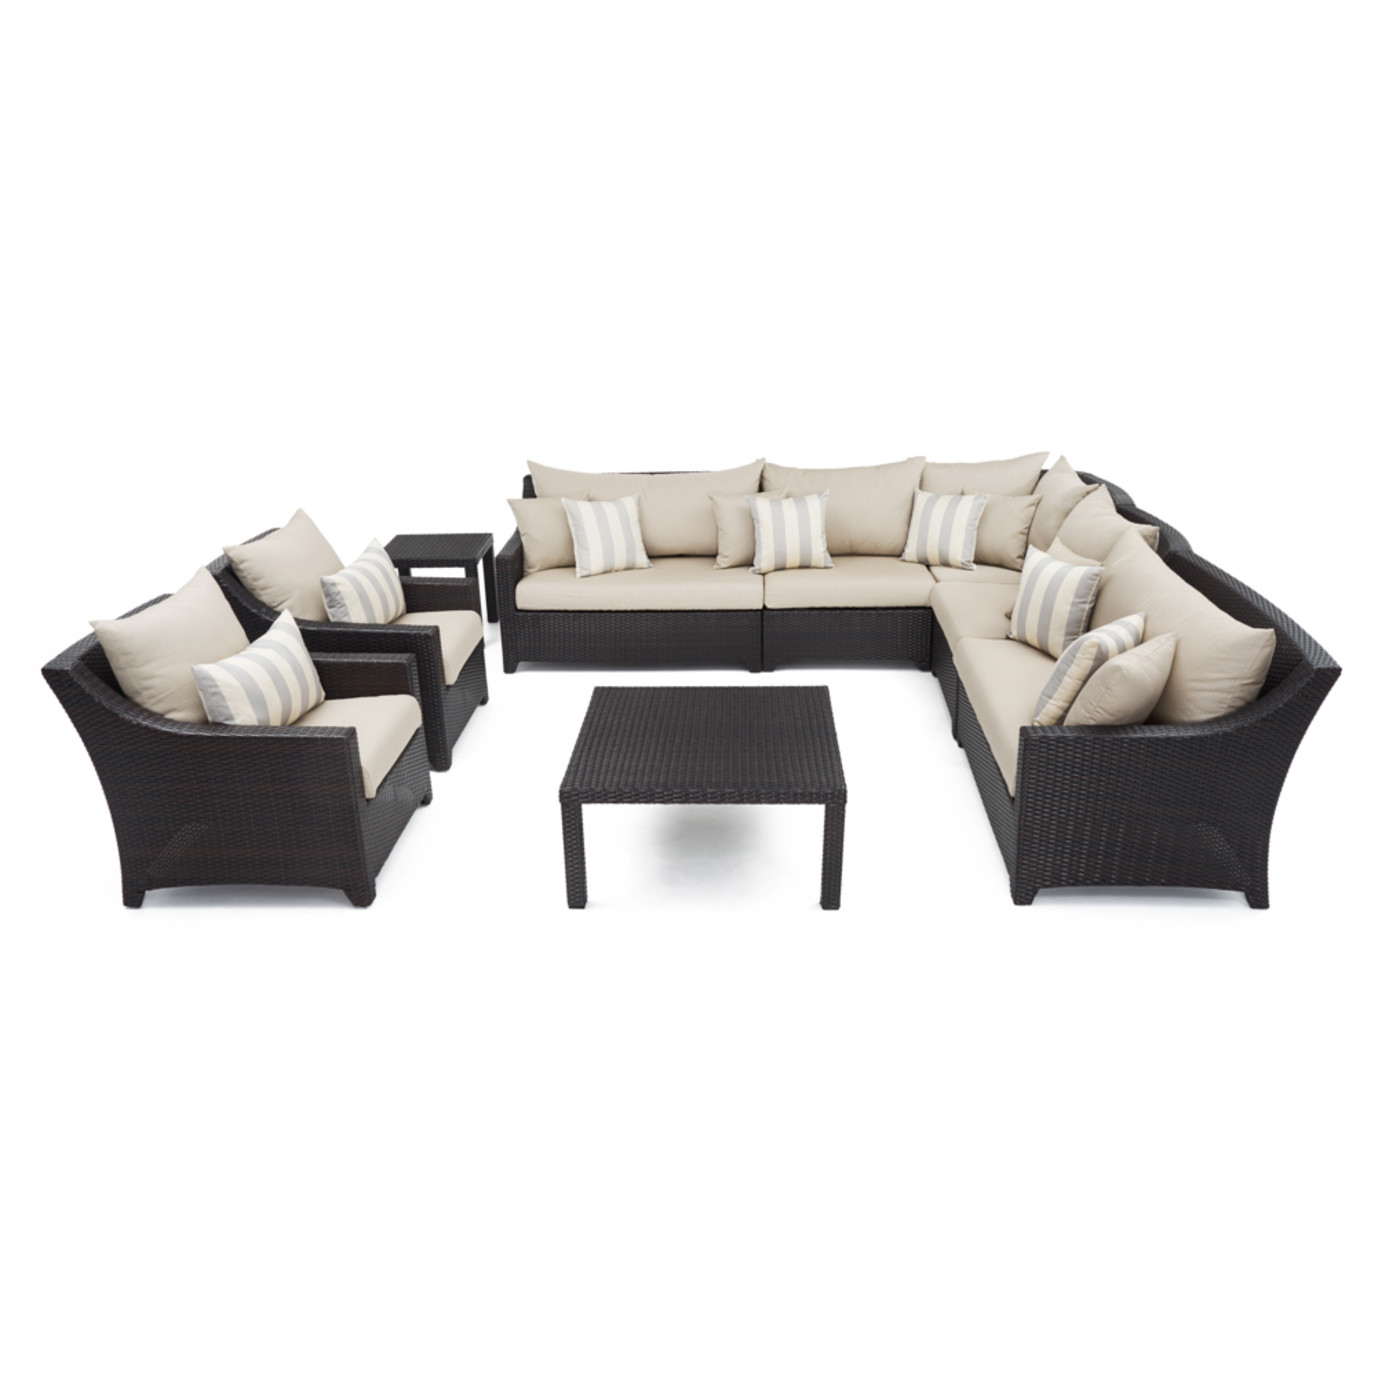 Deco™ 9pc Sectional and Club Set - Slate Grey